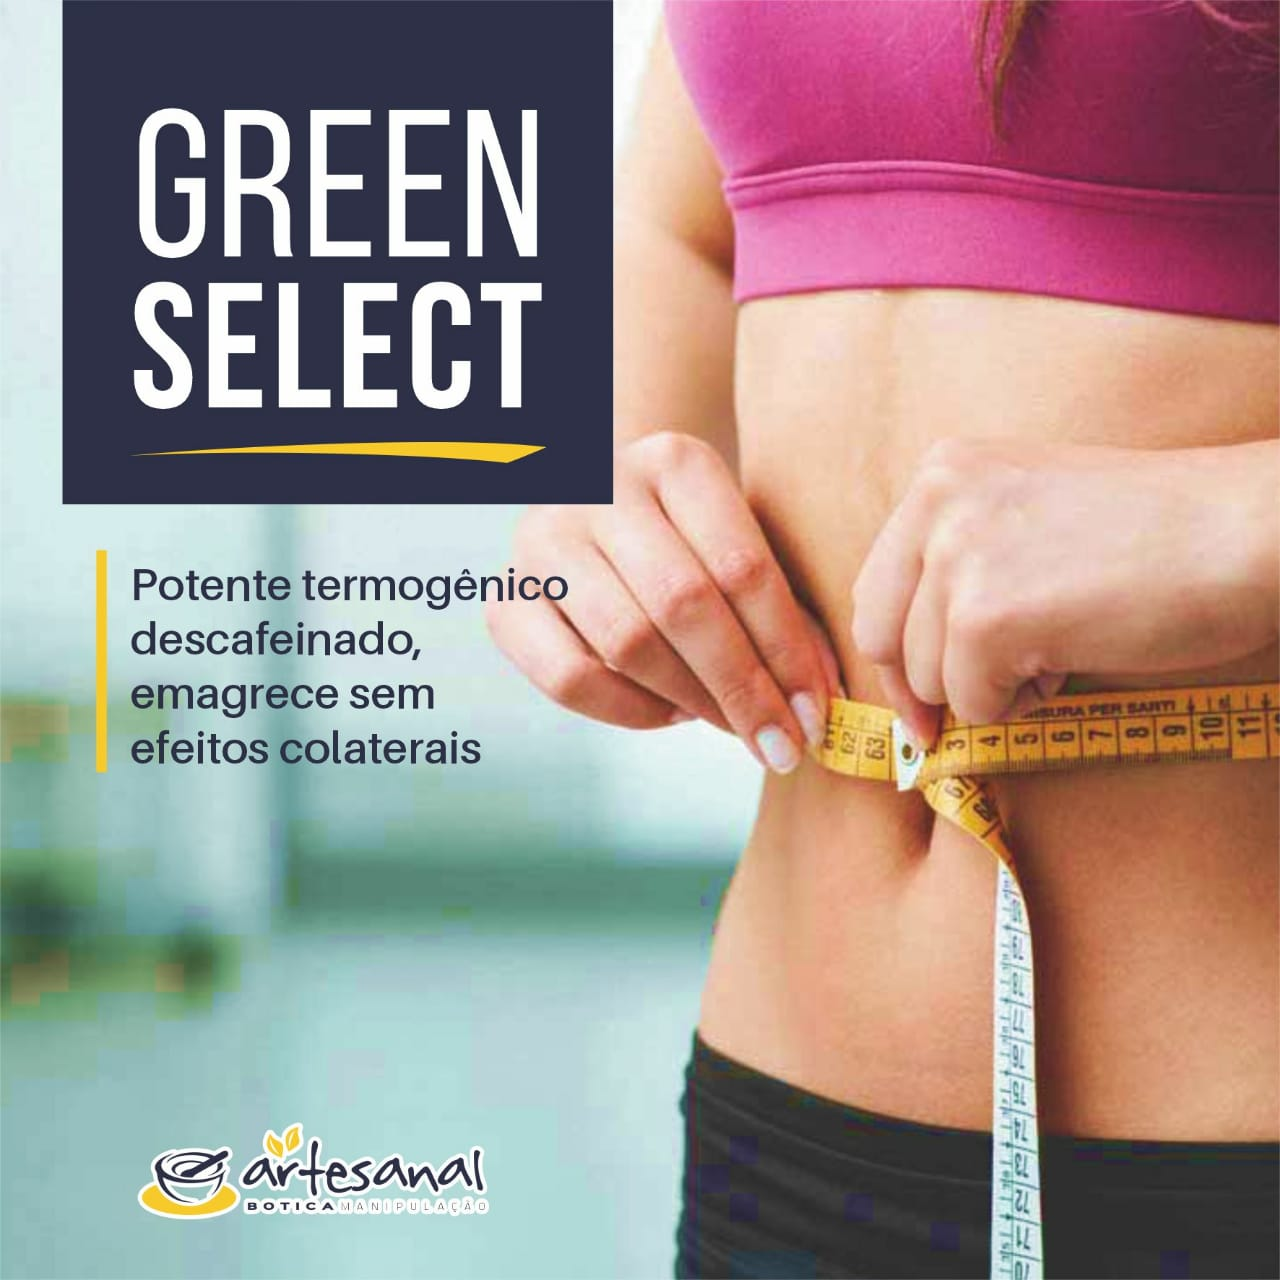 Greenselect Phytosome 120mg - 60 Cps